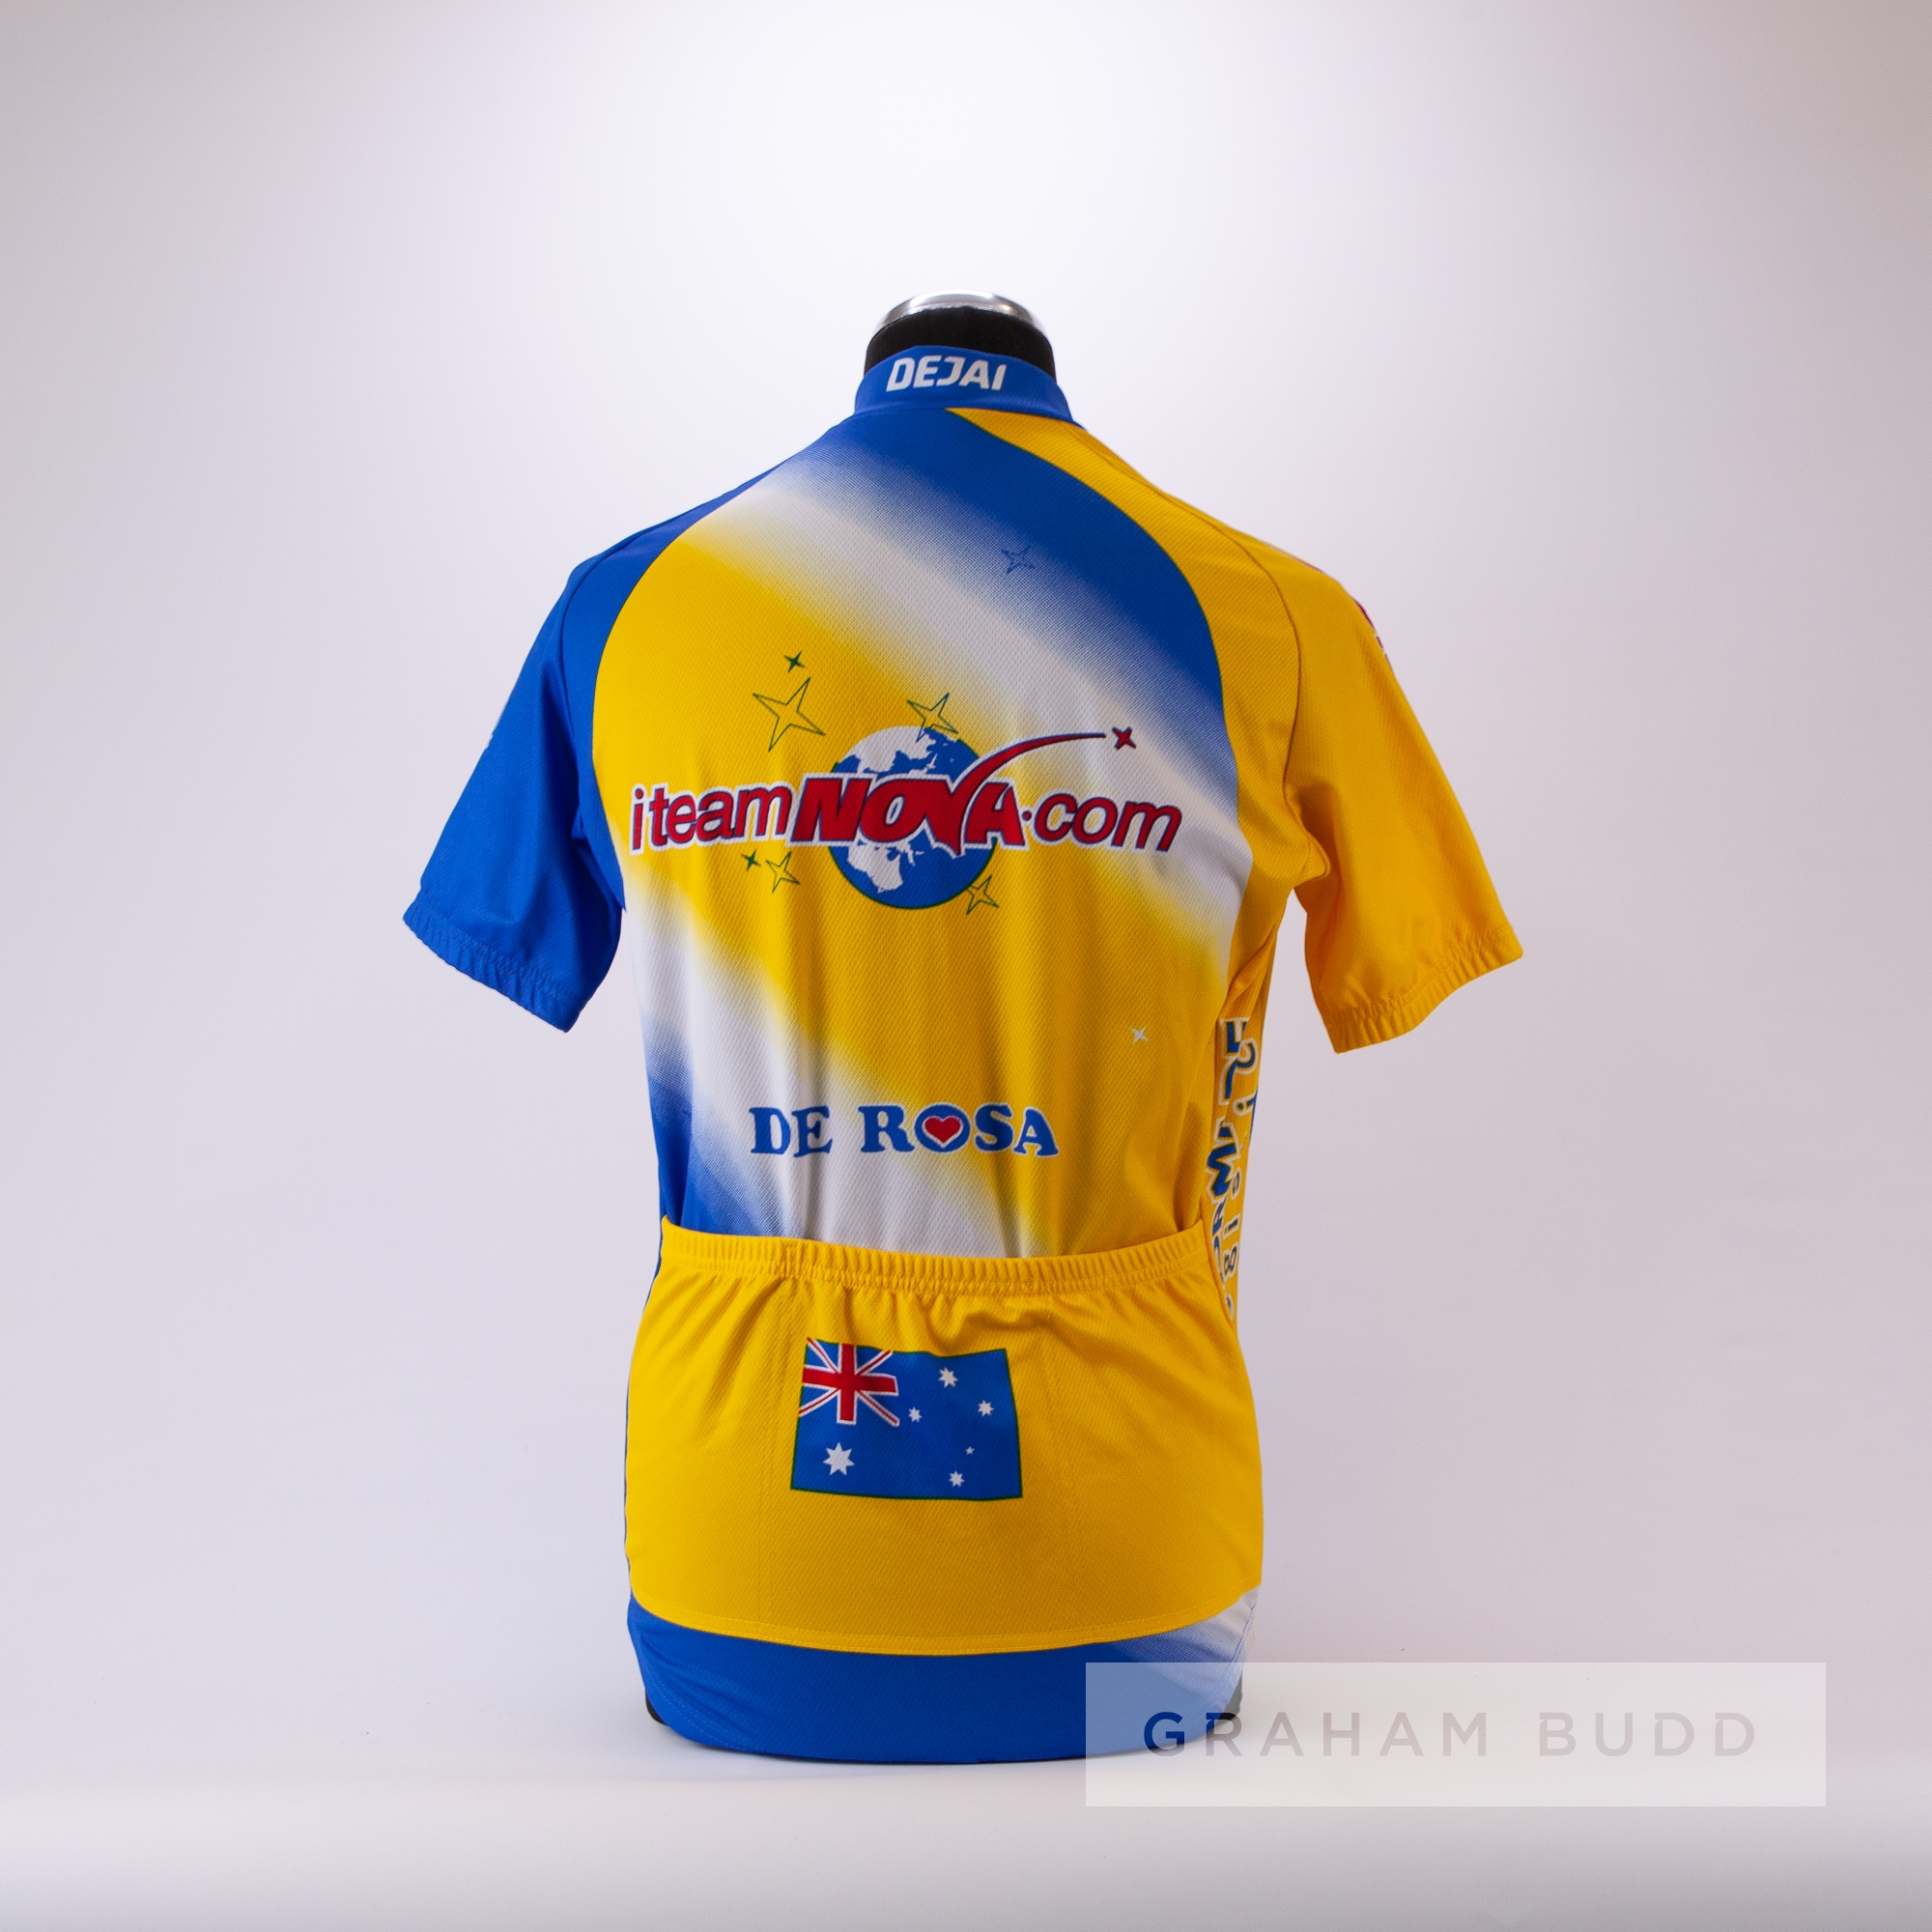 2002 blue, yellow and white i-Team Nova De RosaCycling race jersey, scarce, polyester short-sleeved - Image 4 of 4